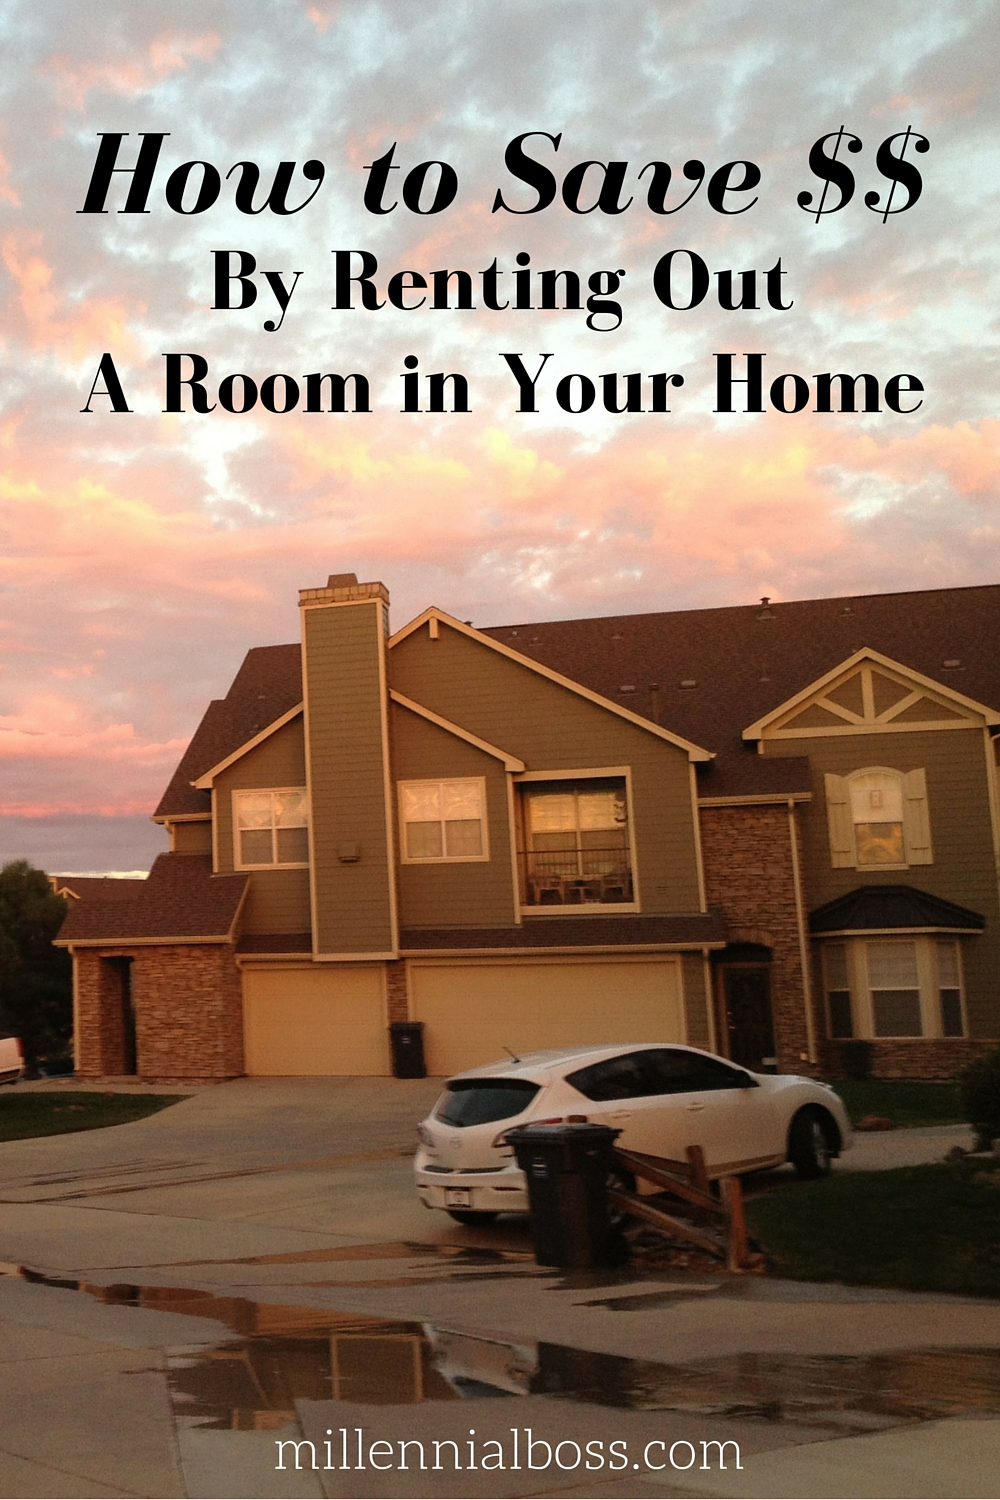 How to Save Money By Renting A Room in Your Home